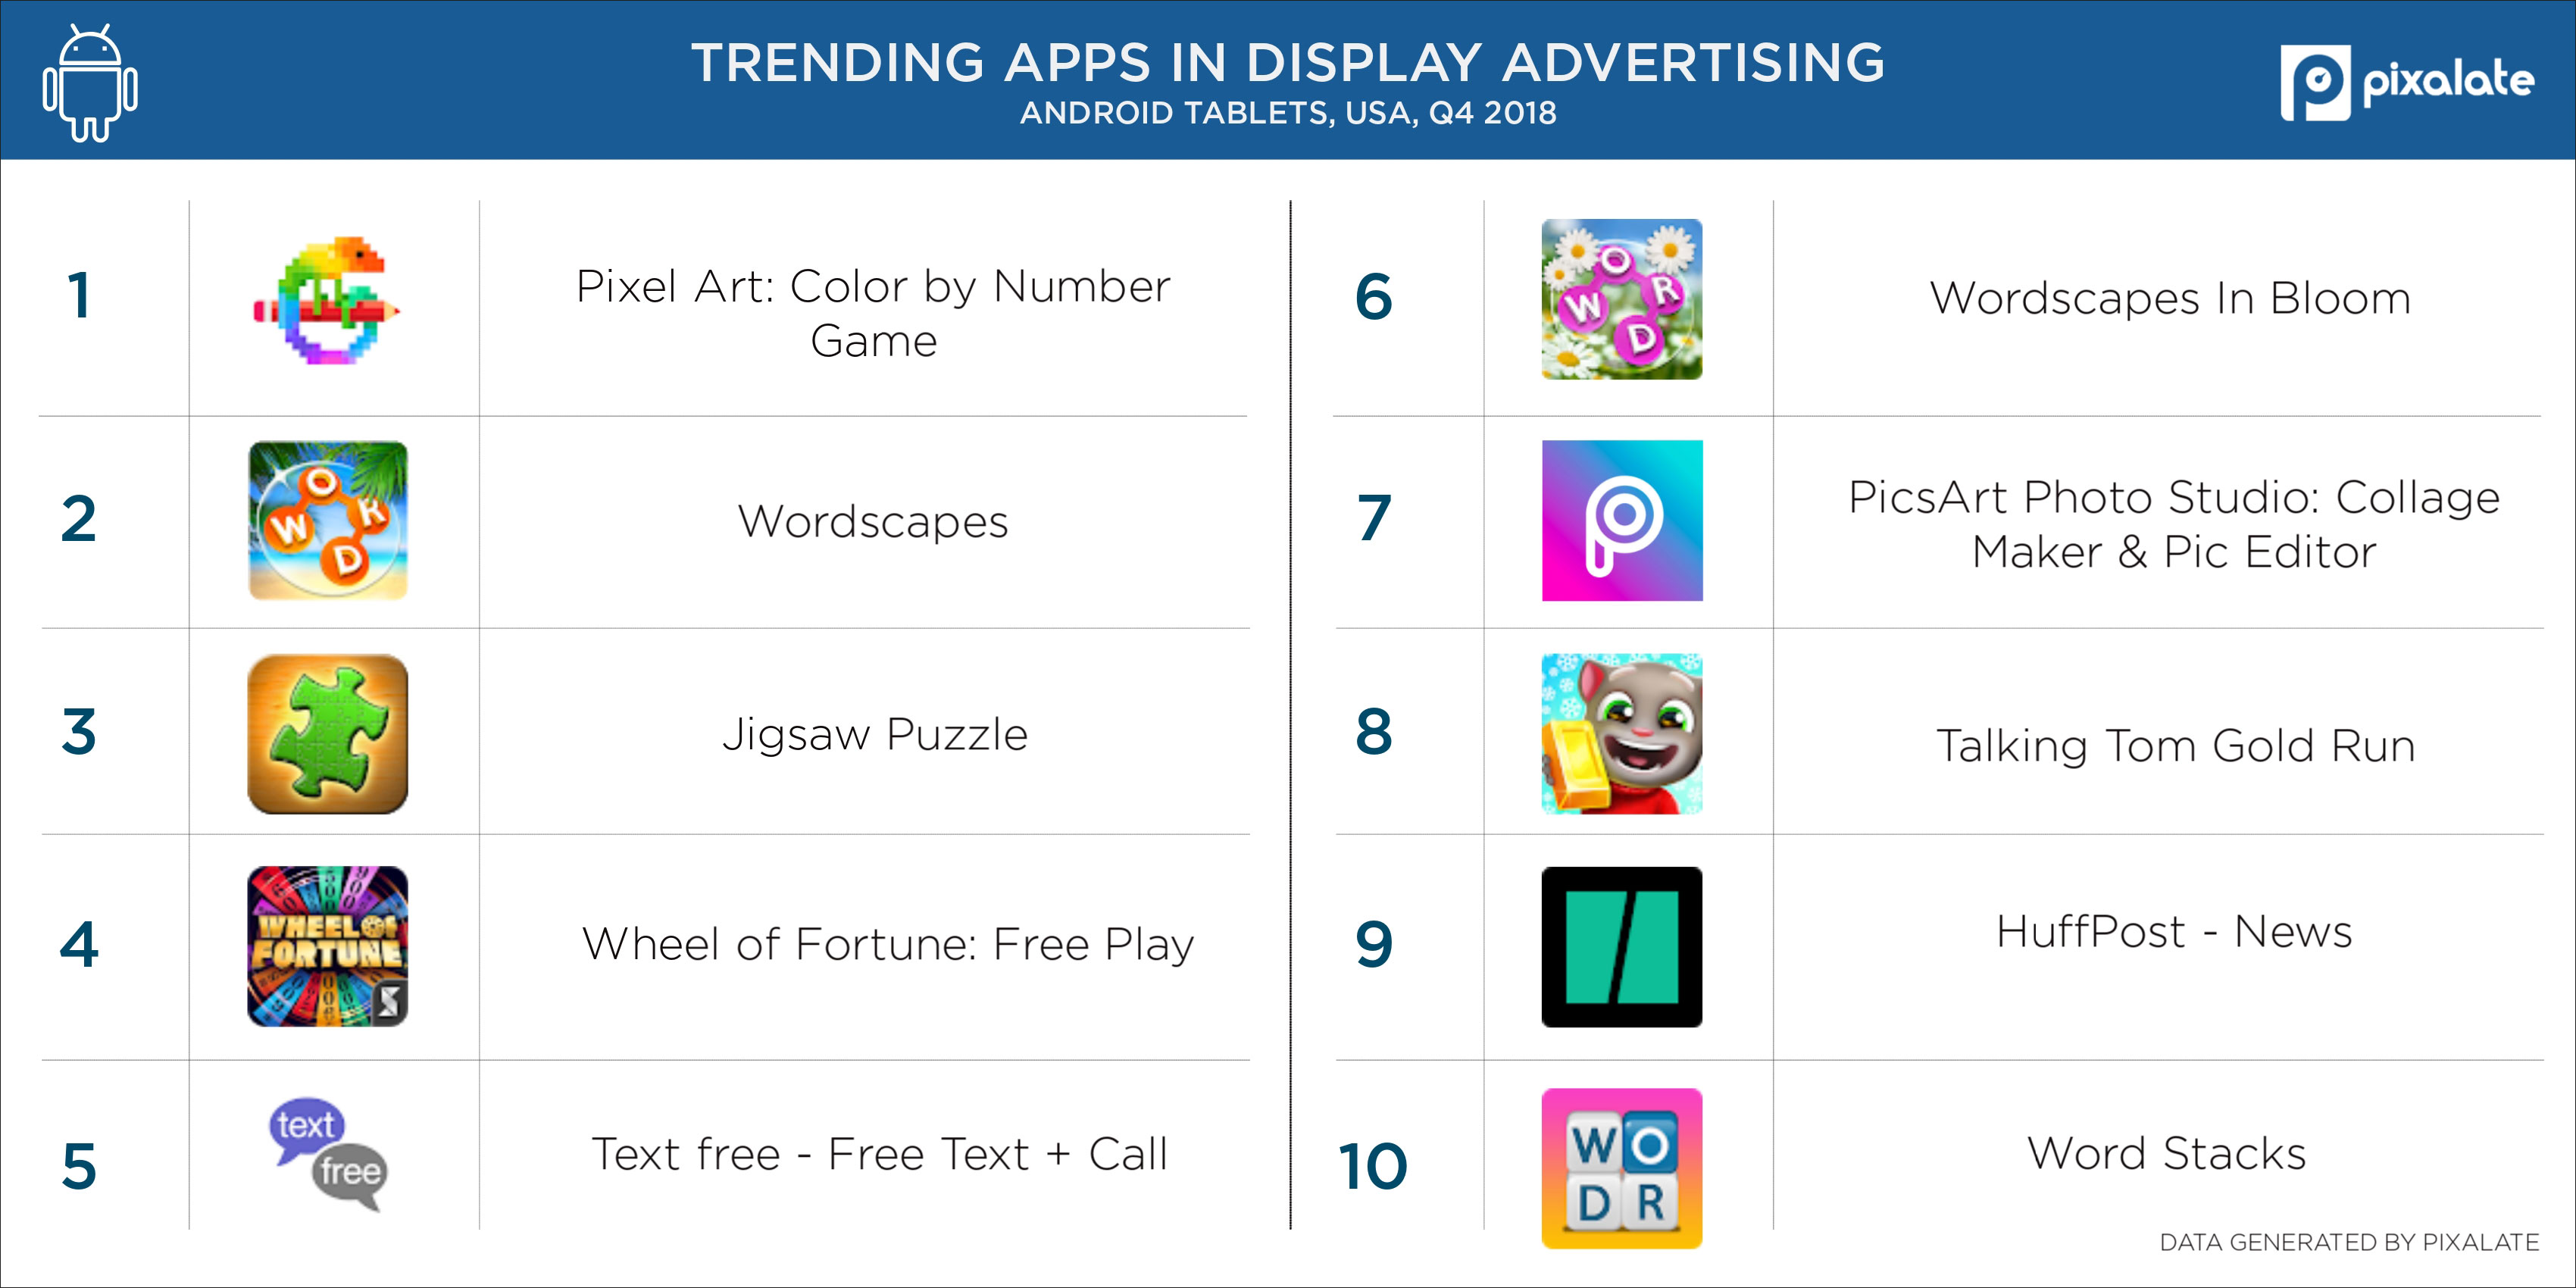 Display-Android-tablet-top-apps-USA-(Q4-2018)